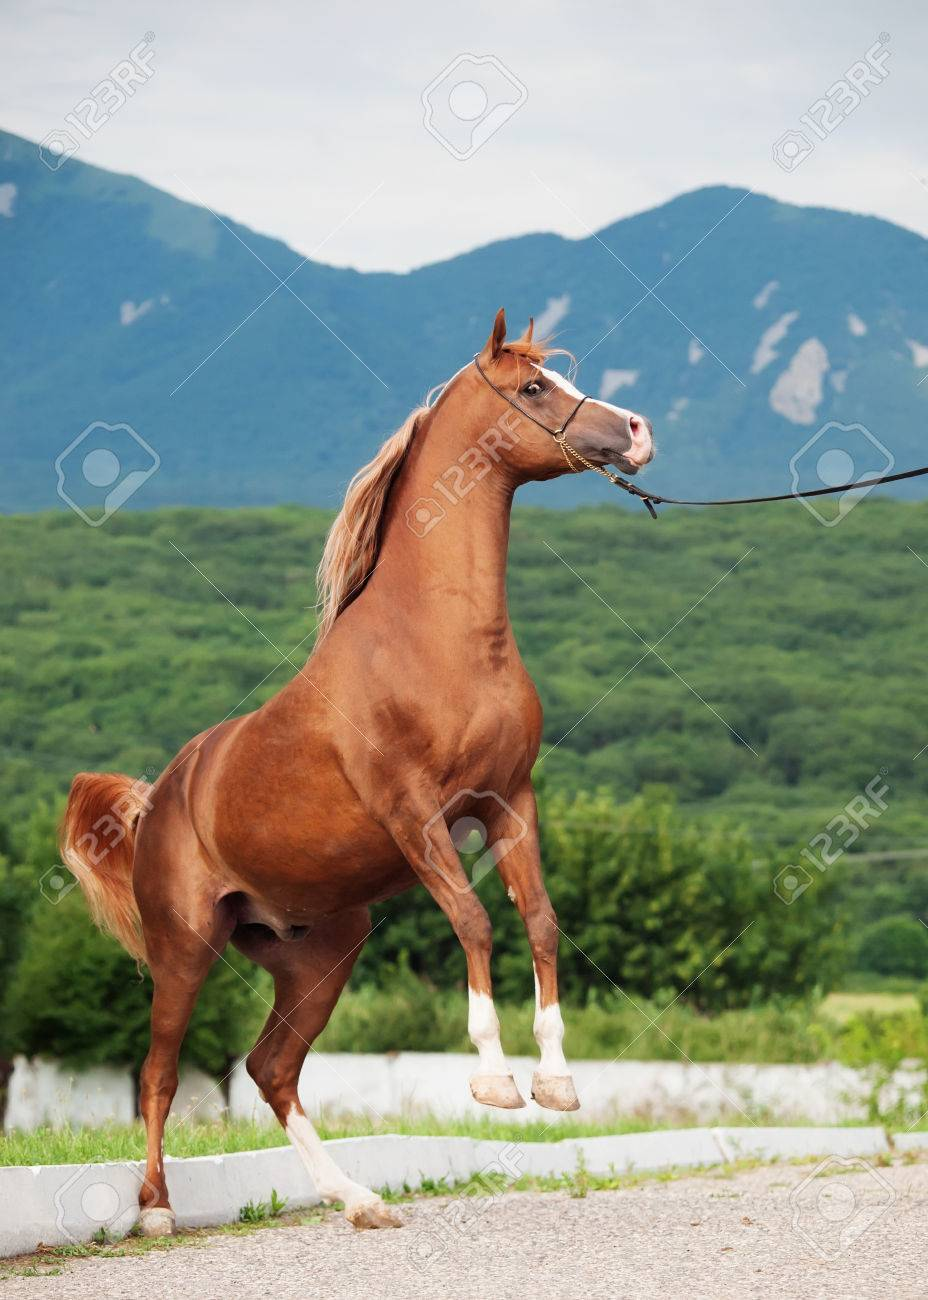 Arabian Chestnut Stallion Rearing Stock Photo Picture And Royalty Free Image Image 66132328